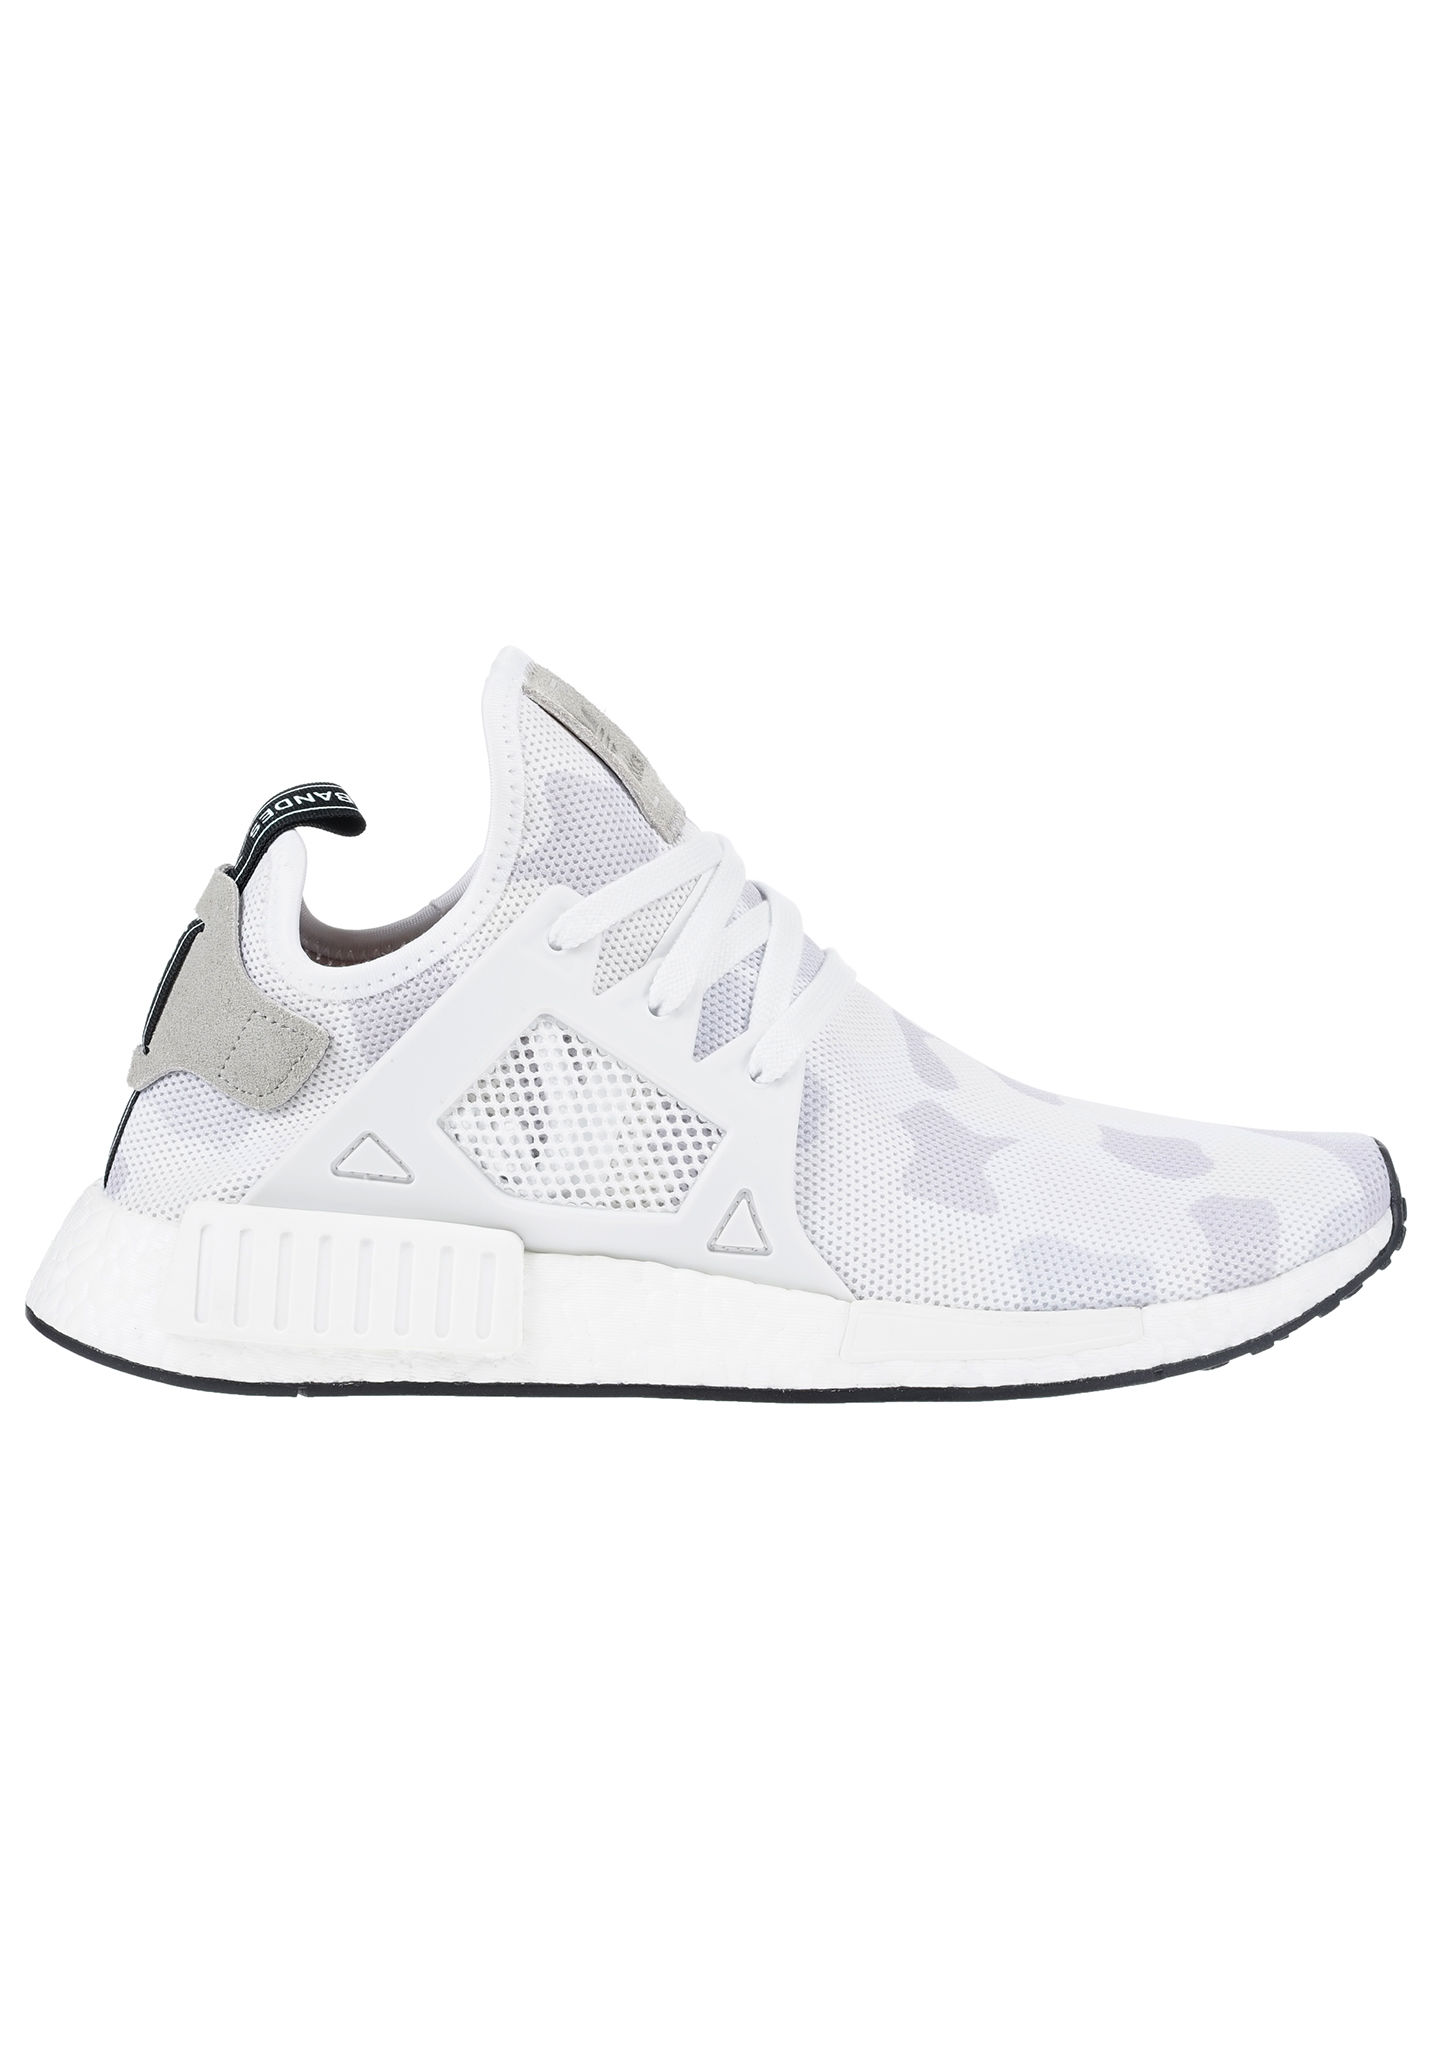 new concept 65514 57c6b adidas Nmd XR1 HerrenADIDAS NMD XR1 Sneaker für Herren Weiß Planet Sports